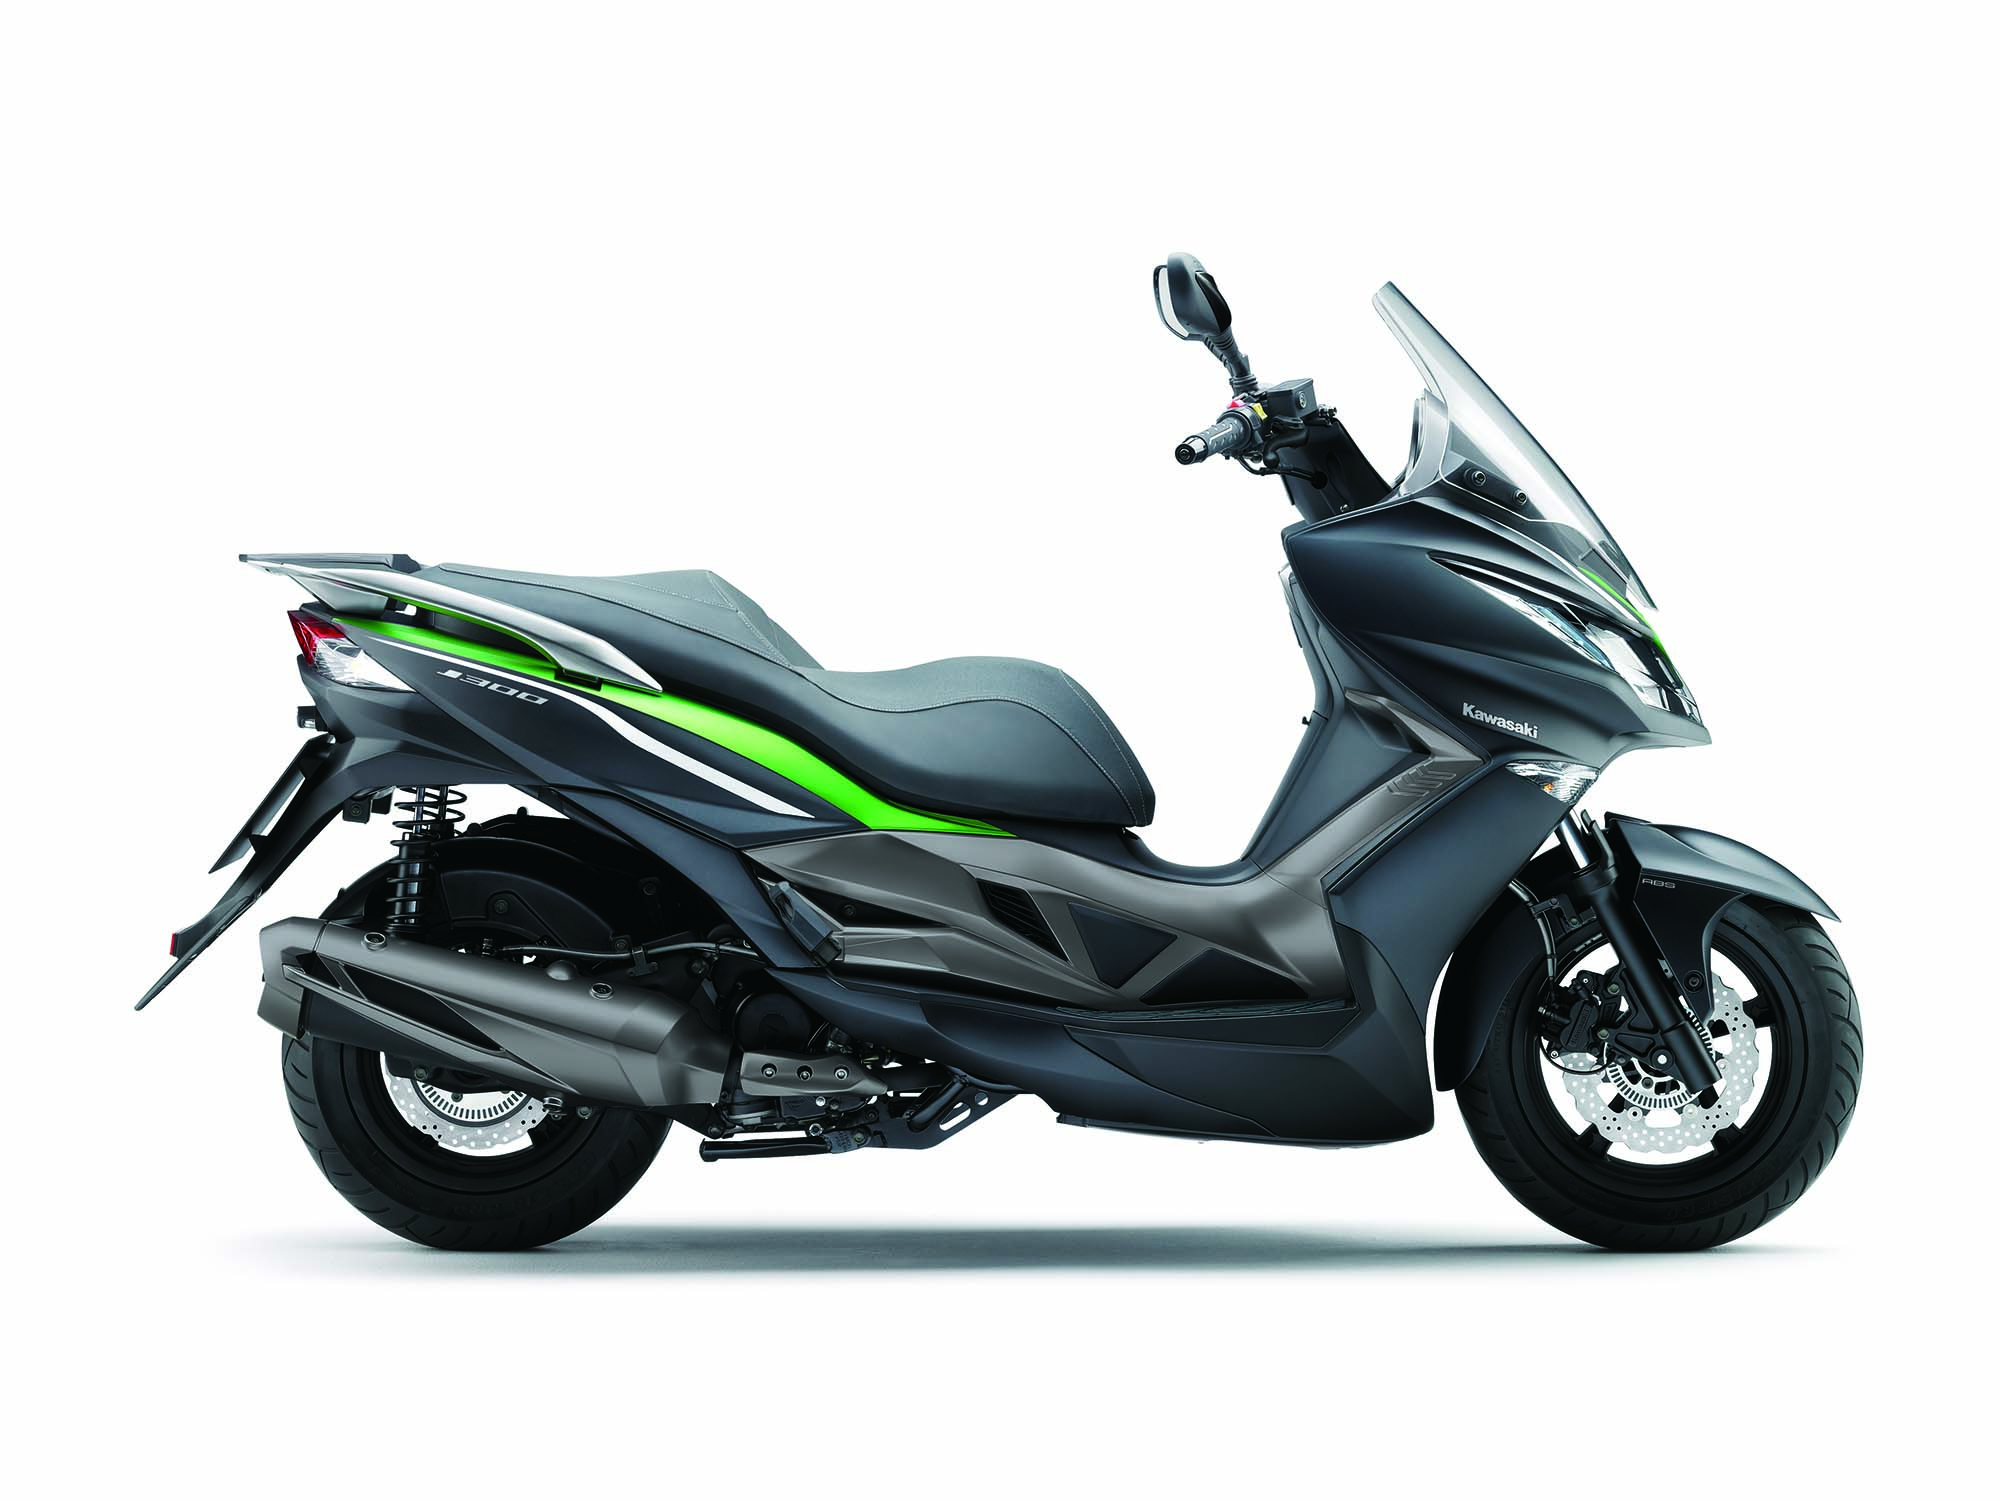 2014 kawasaki j300 a maxi scooter from team green asphalt rubber. Black Bedroom Furniture Sets. Home Design Ideas